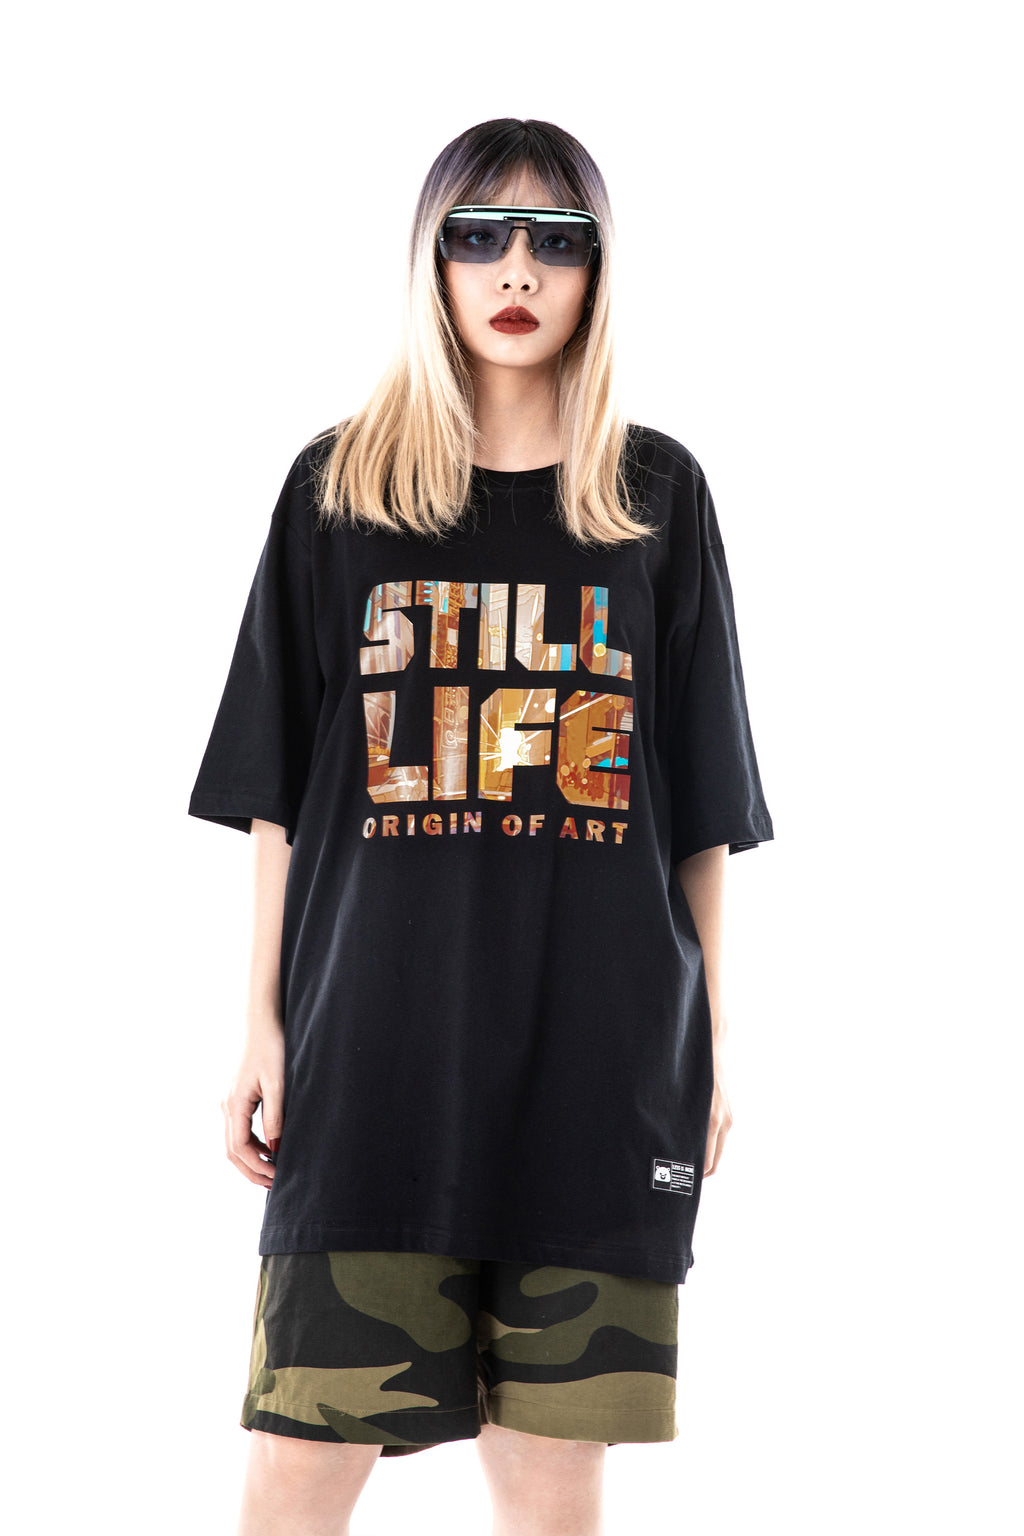 Letter Graphic T-shirt - 02JT3143